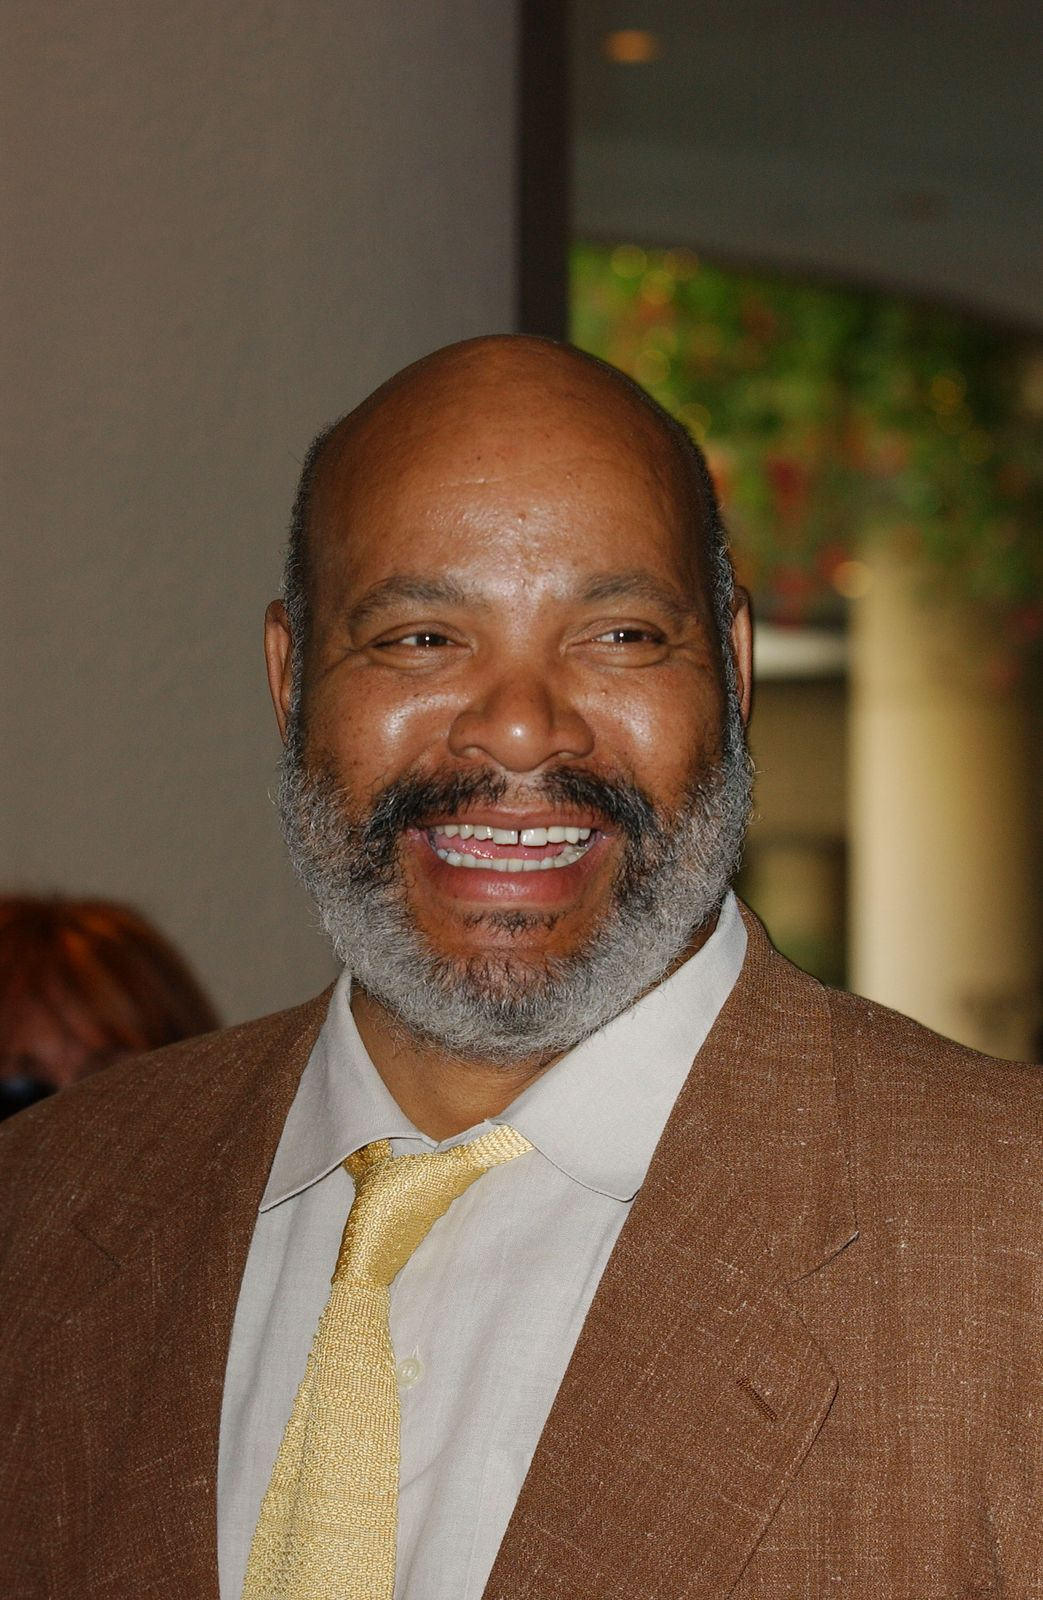 James Avery/Photo:Getty Images